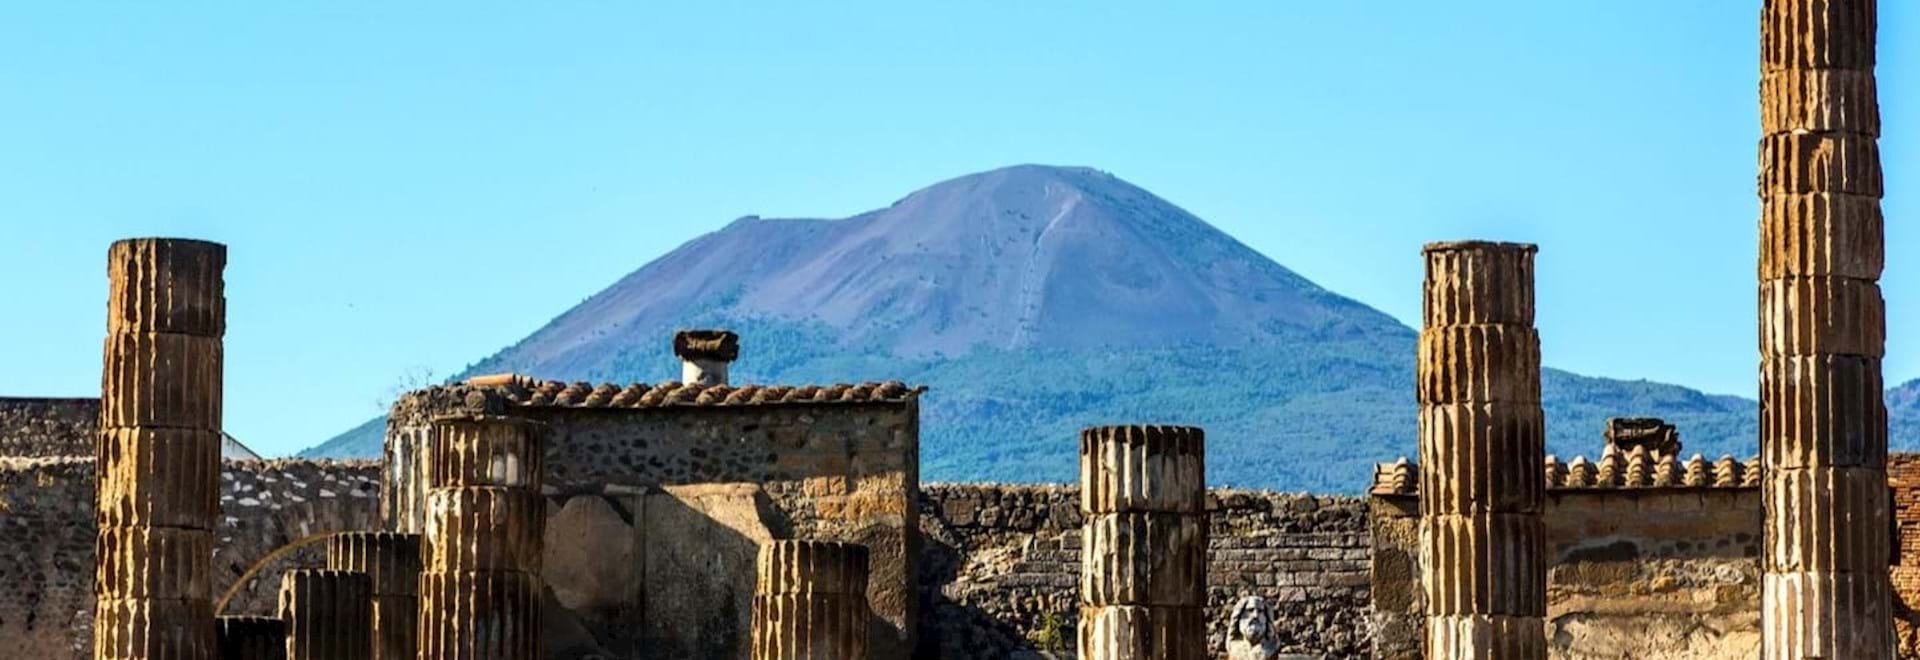 Ruins of Pompeii and Mt. Vesuvius at the back, Italy